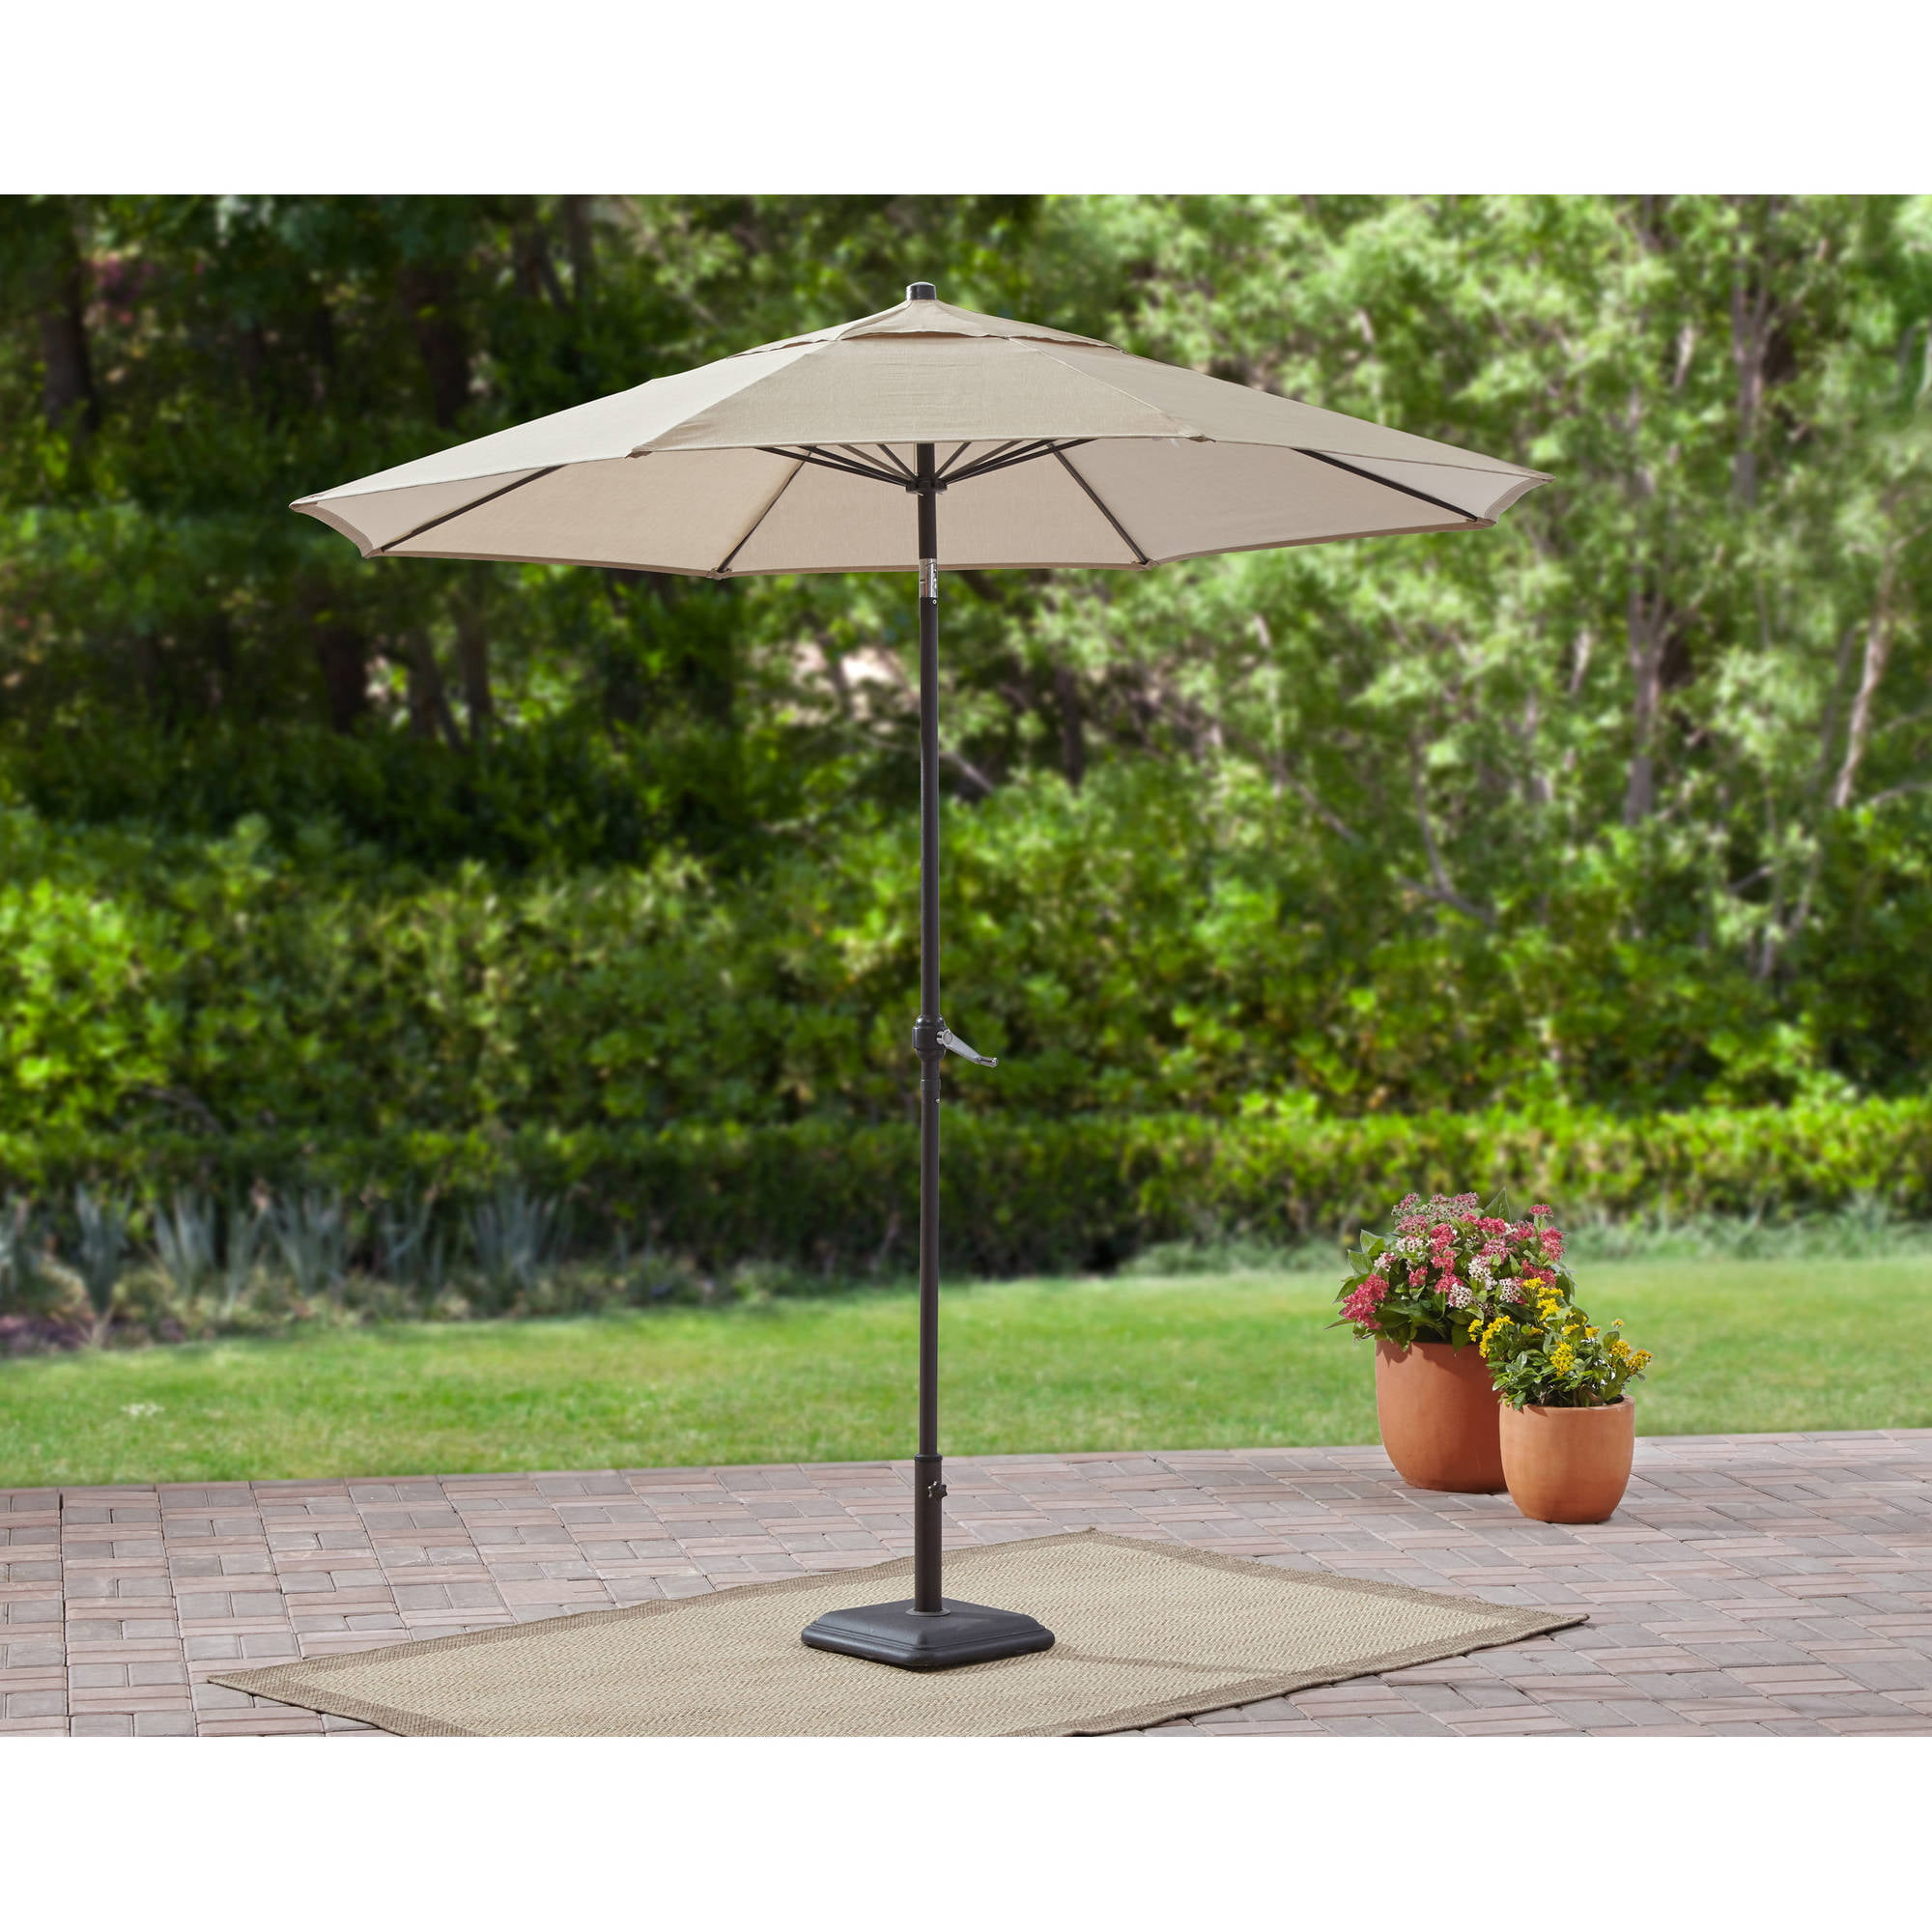 Patio Umbrellas & Bases Walmart